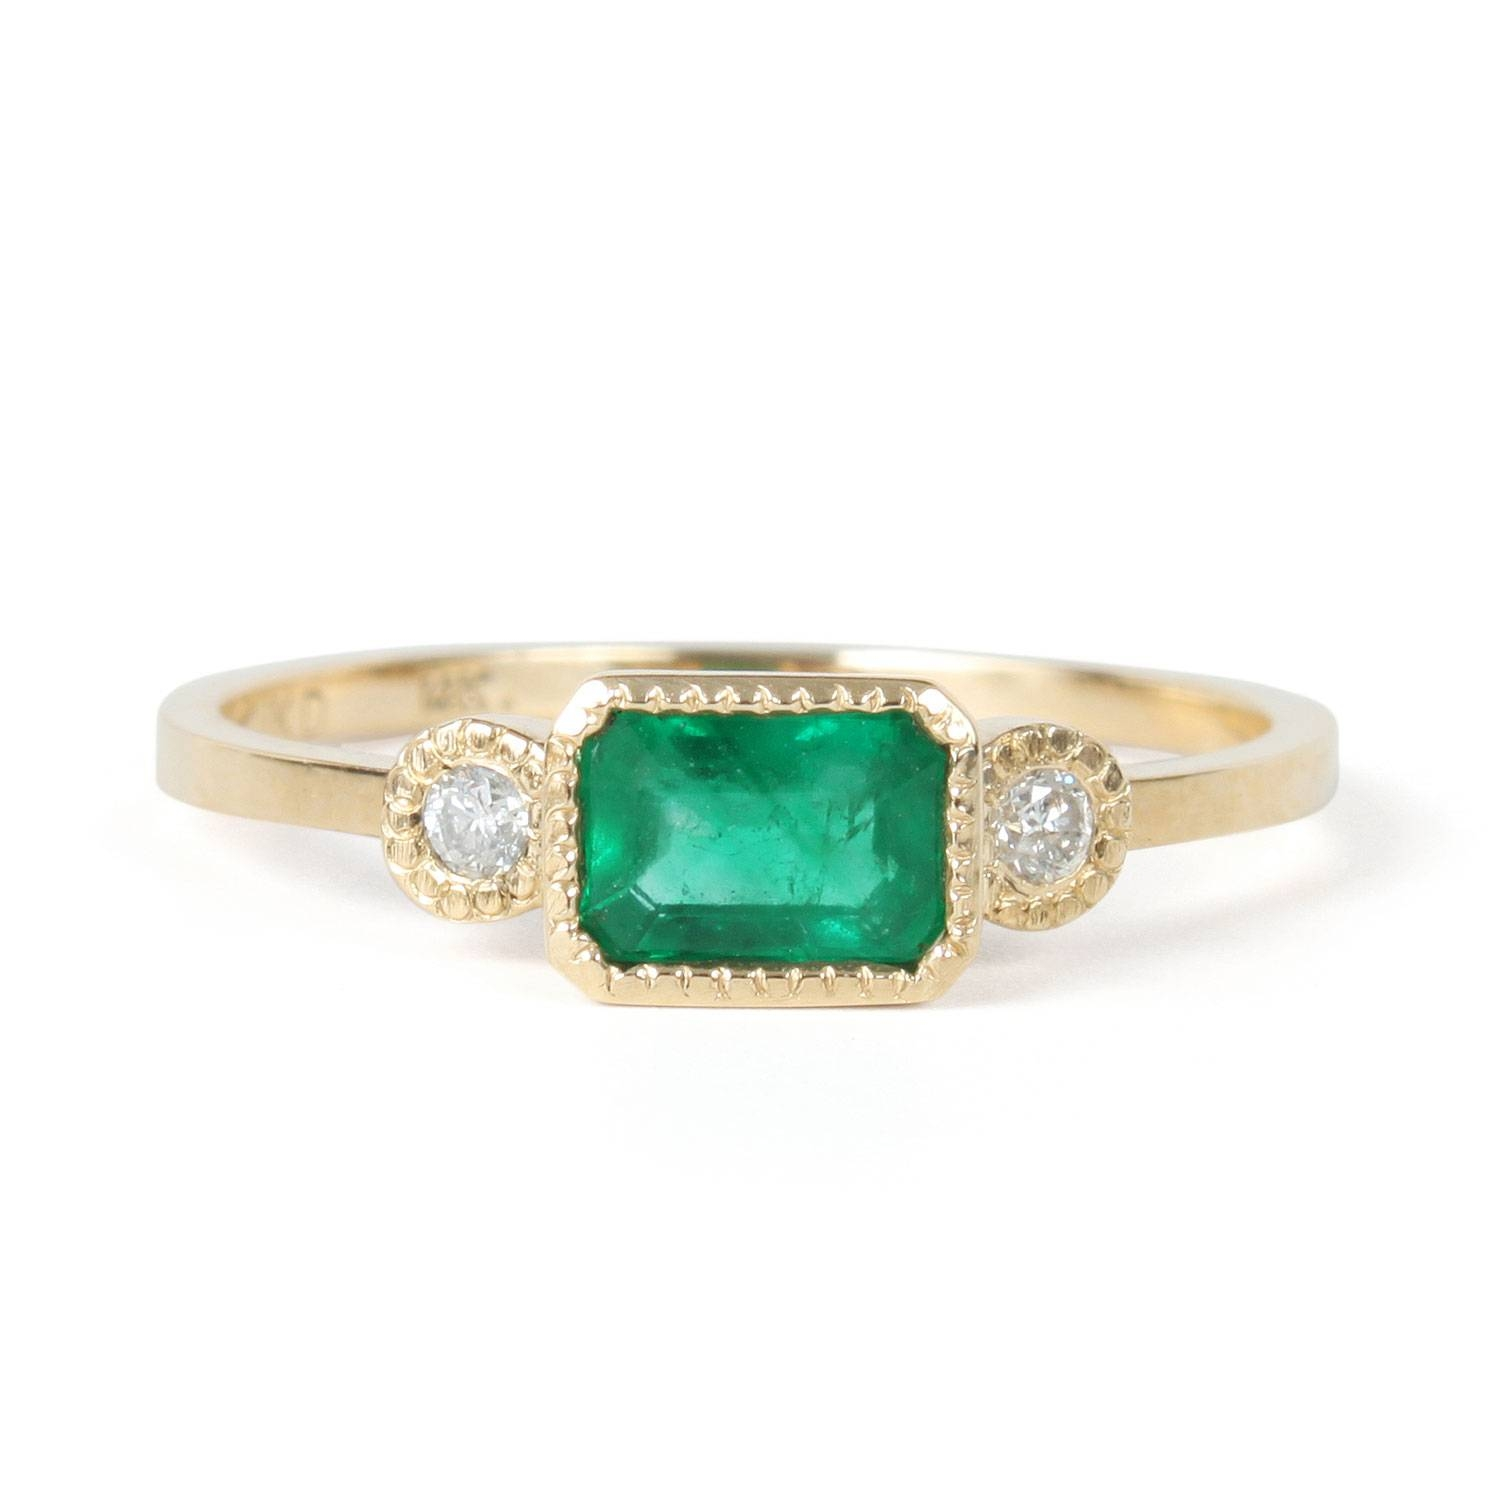 Wedding Rings : Engagement Rings With Emerald Emerald Wedding Regarding Emerald Engagement Rings For Women (View 12 of 15)